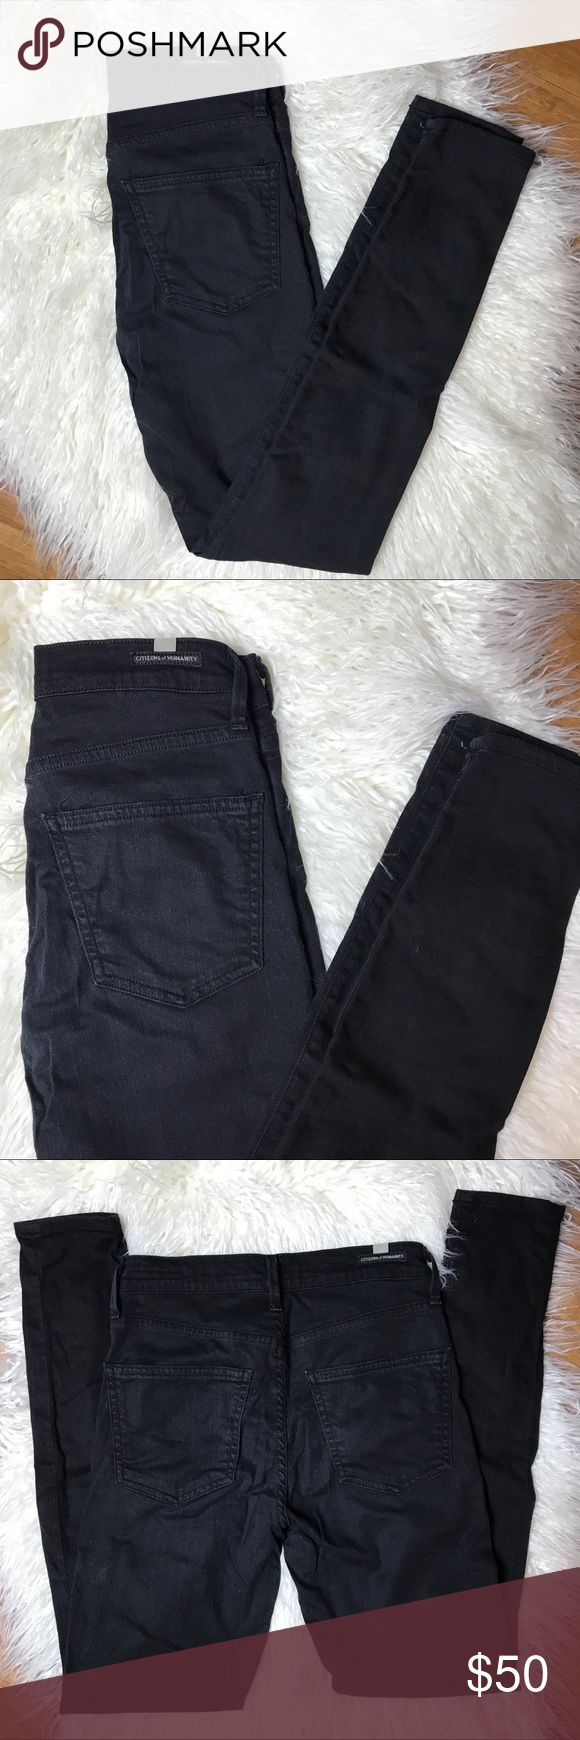 "Citizen of Humanity Rocket Highrise Skinny Citizen of Humanity Rocket Highrise Skinny. One of their most popular jeans and super flattering. A bit wrinkled in the photo but in excellent condition. 9 1/2 "" rise and 29 1/2 inch inseam. Citizens Of Humanity Jeans Skinny"